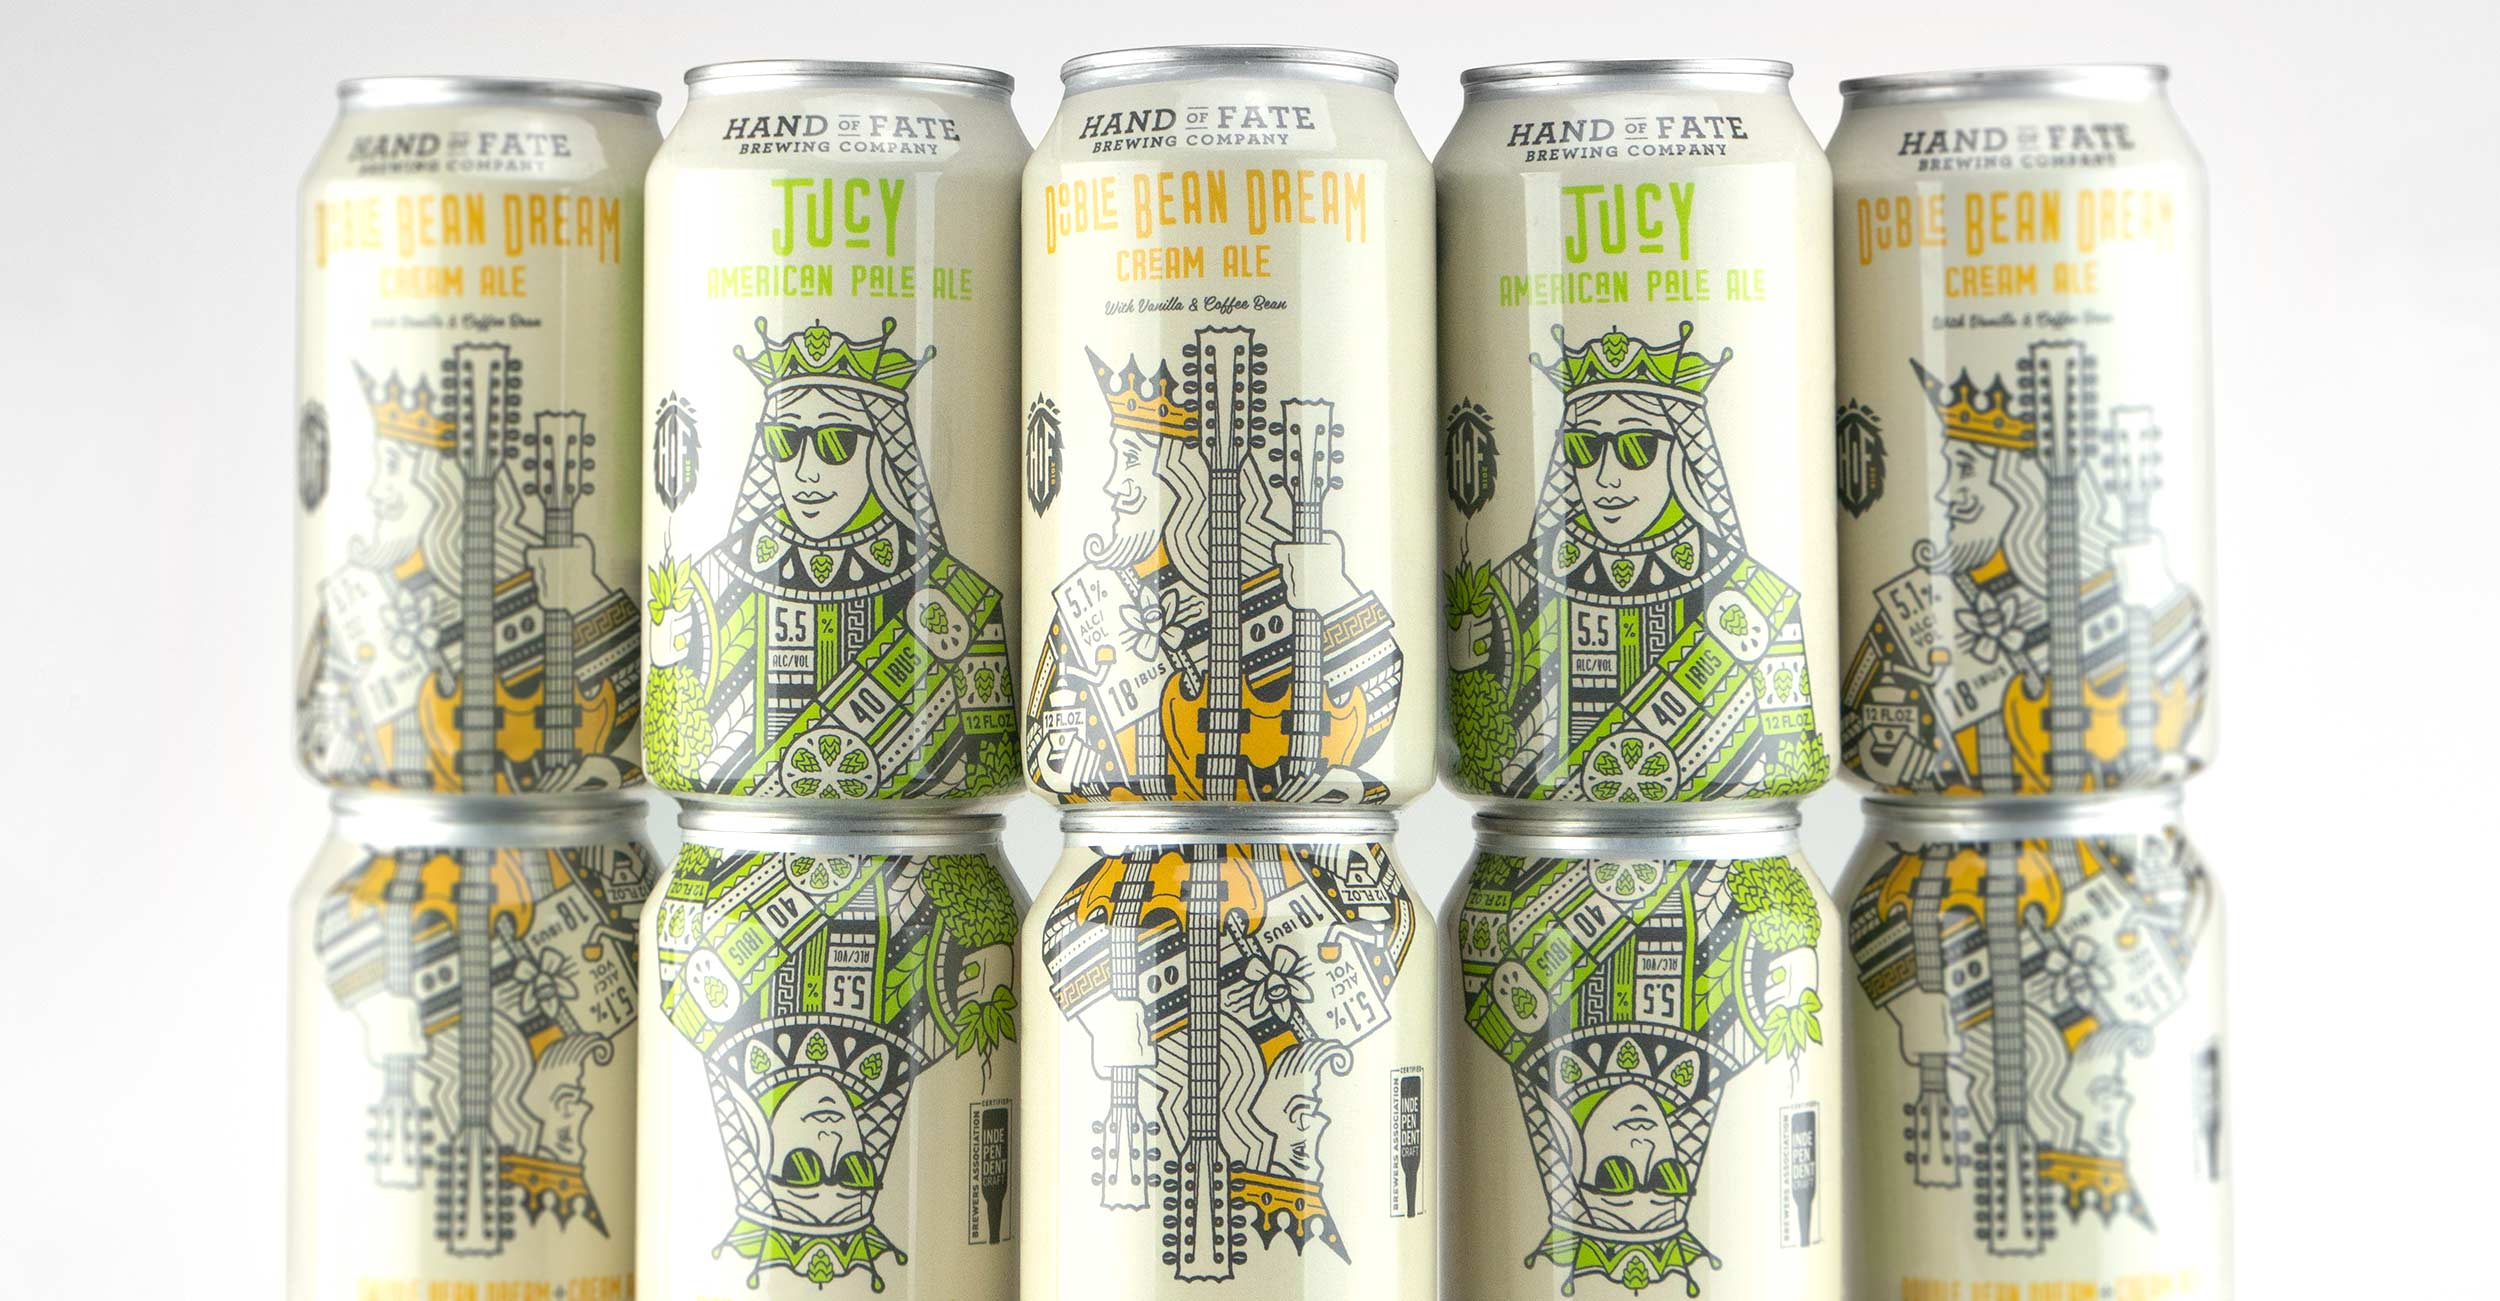 Stacking cans design for Hand of Fate Brewing Co. craft brewery.